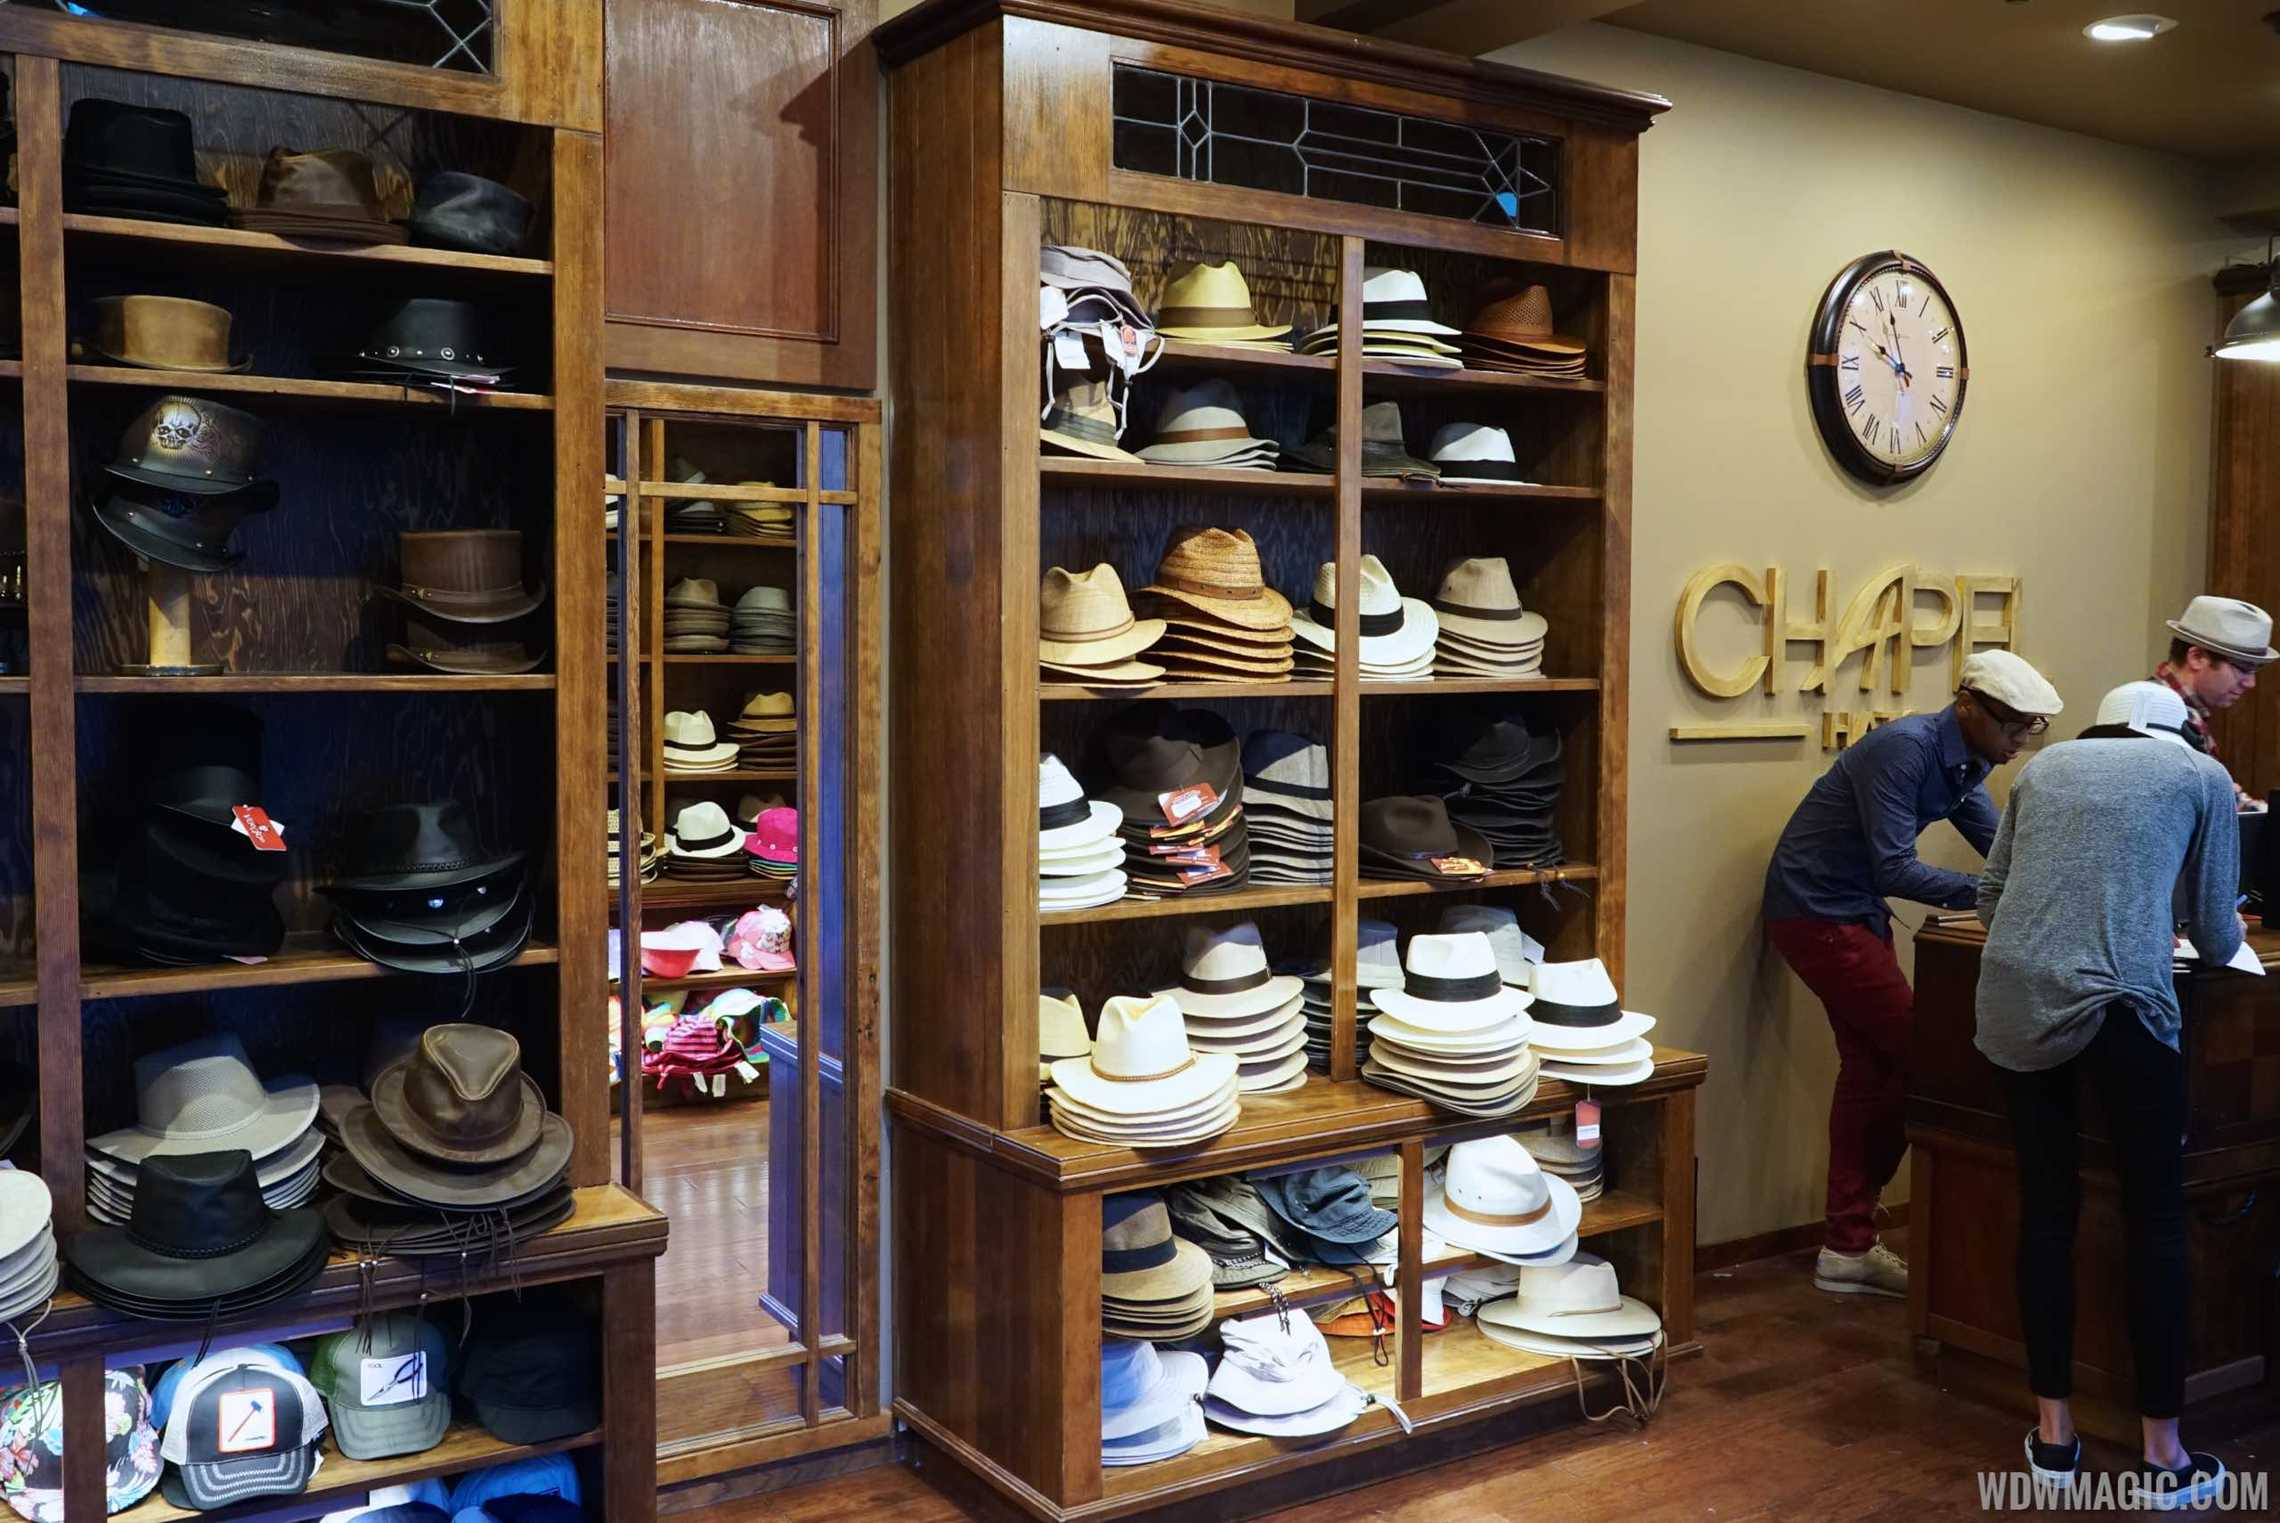 Chapel Hats - Store overview